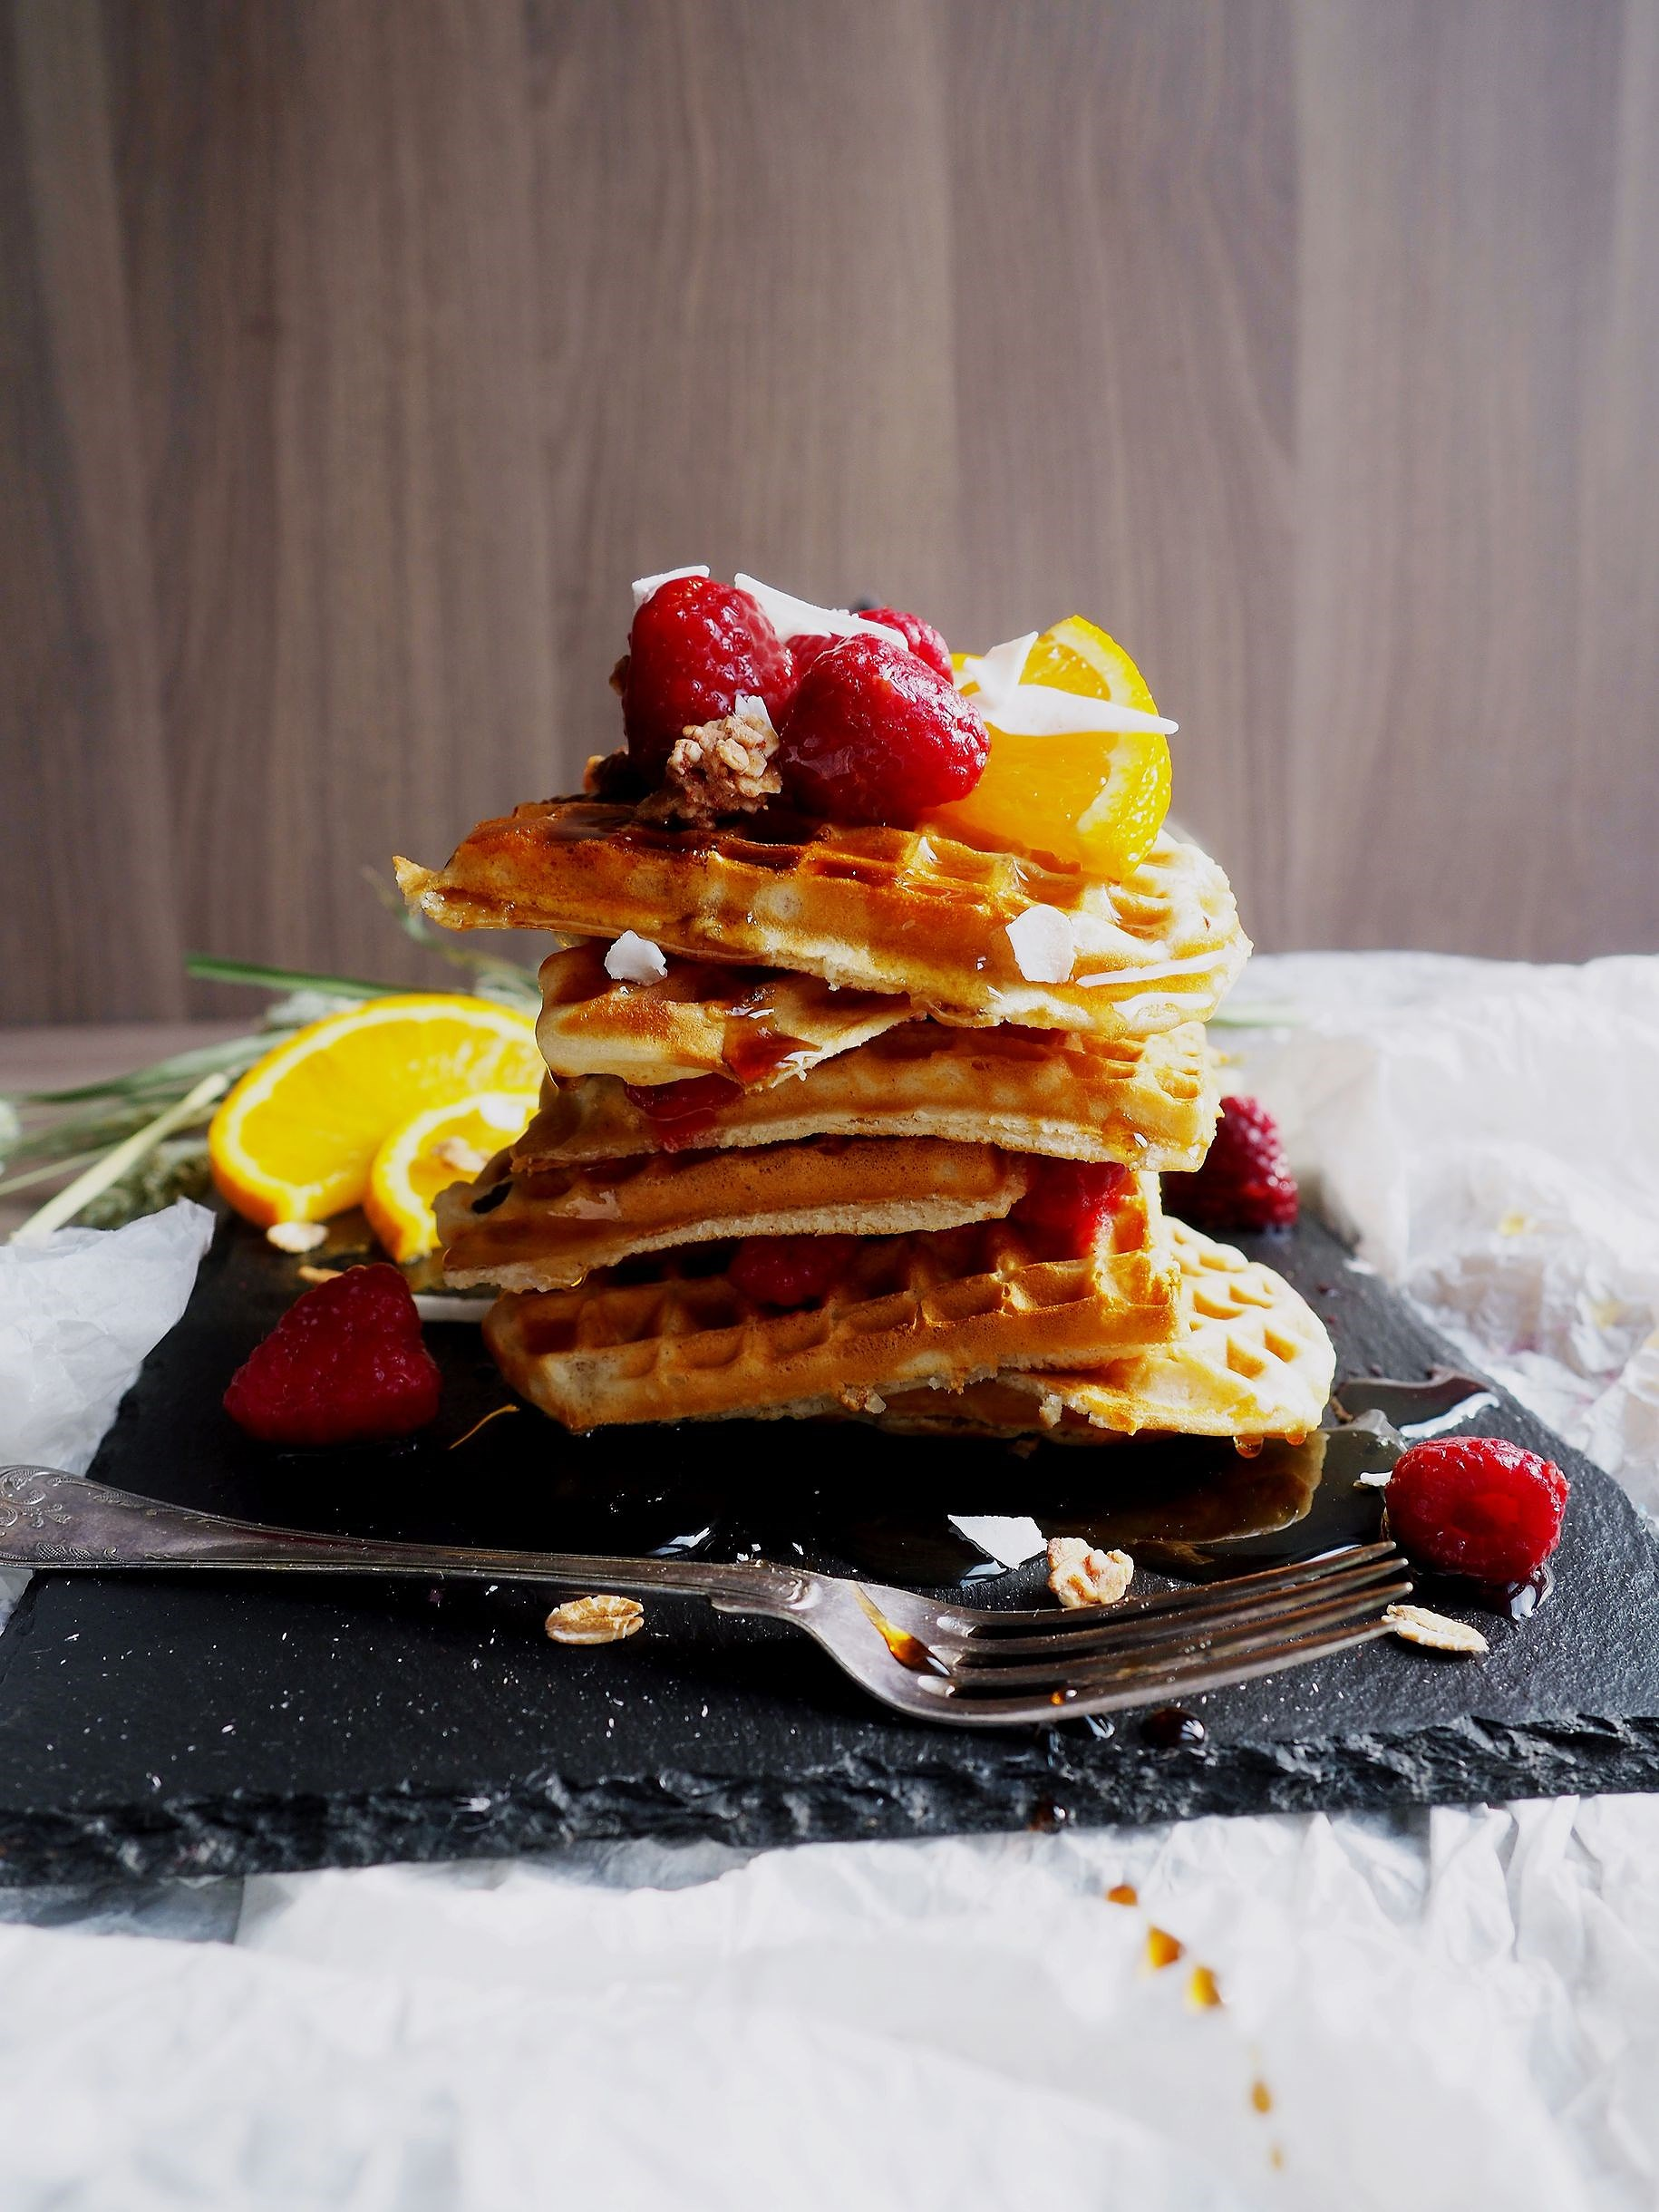 Vegan Gluten Free Waffles with Maple Syrup, Raspberries and Coconut